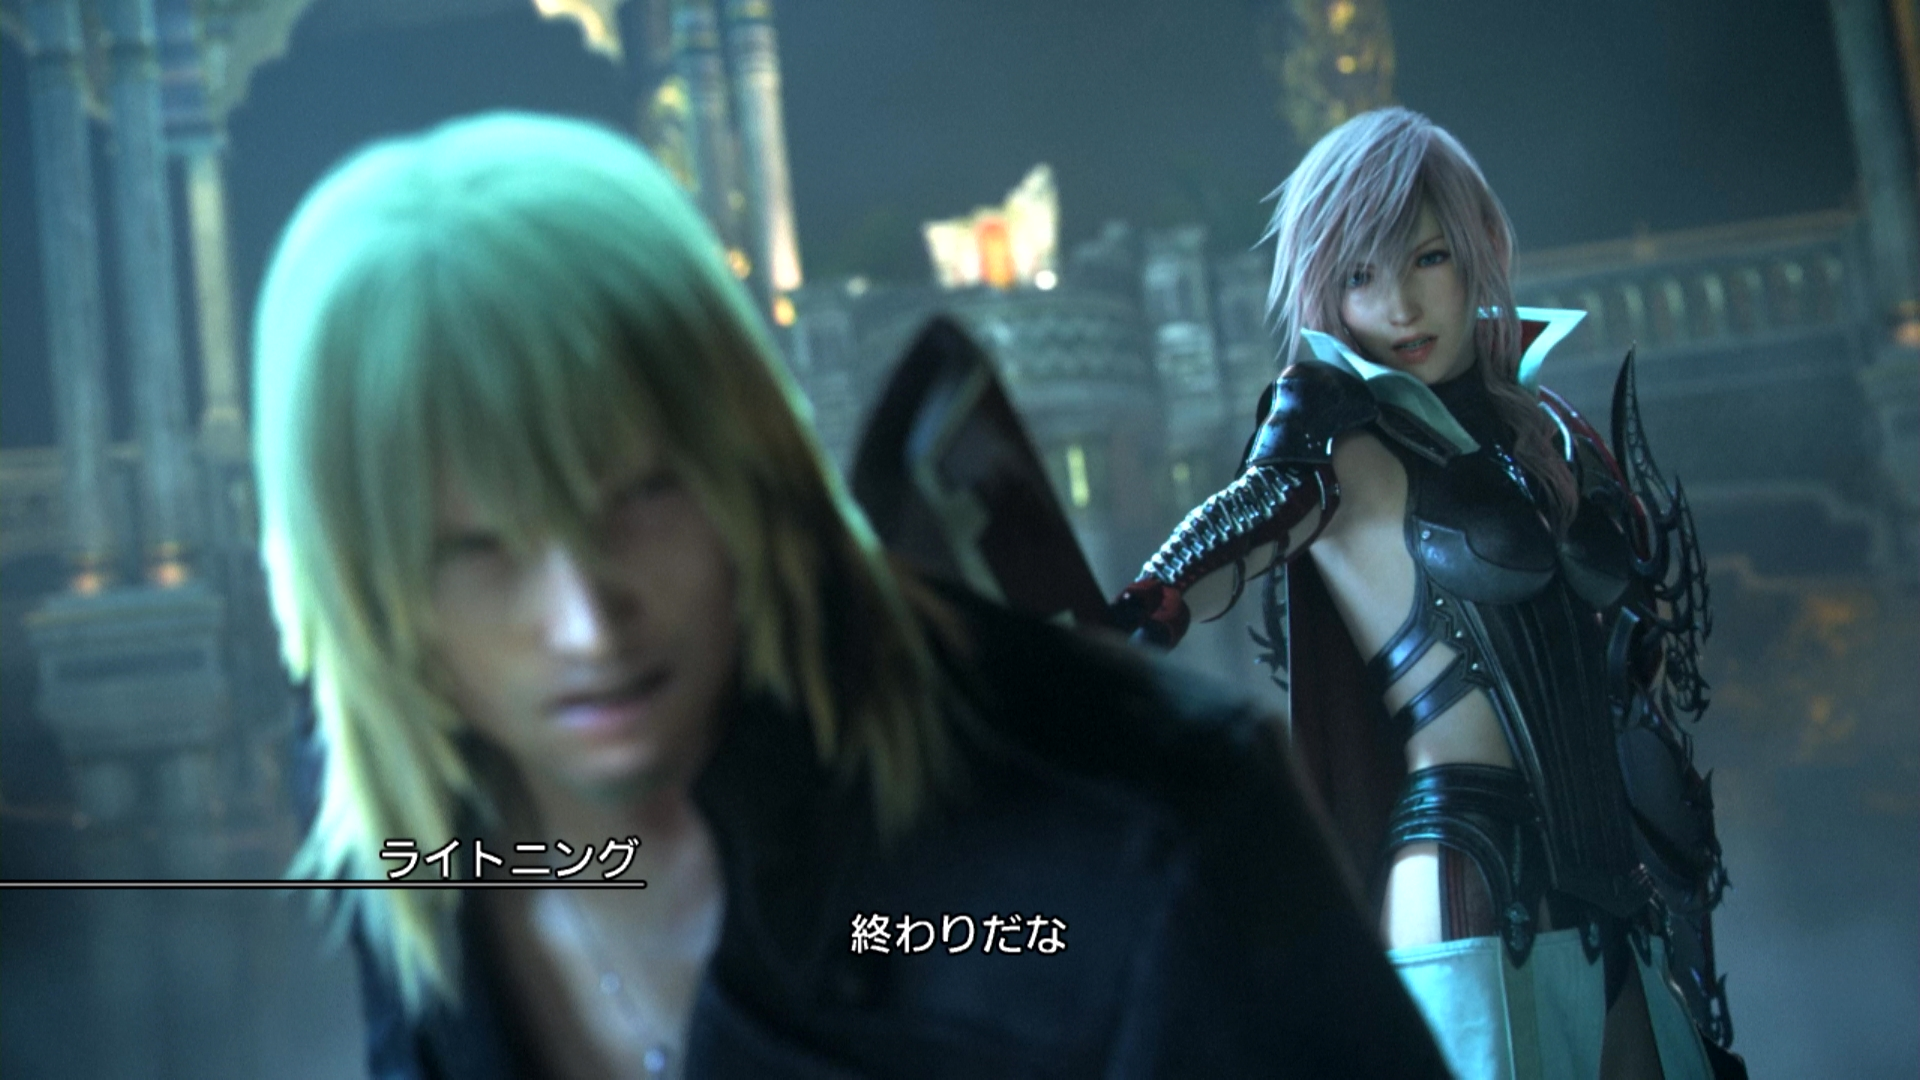 Lightning returns final fantasy xiii 1b voltagebd Gallery